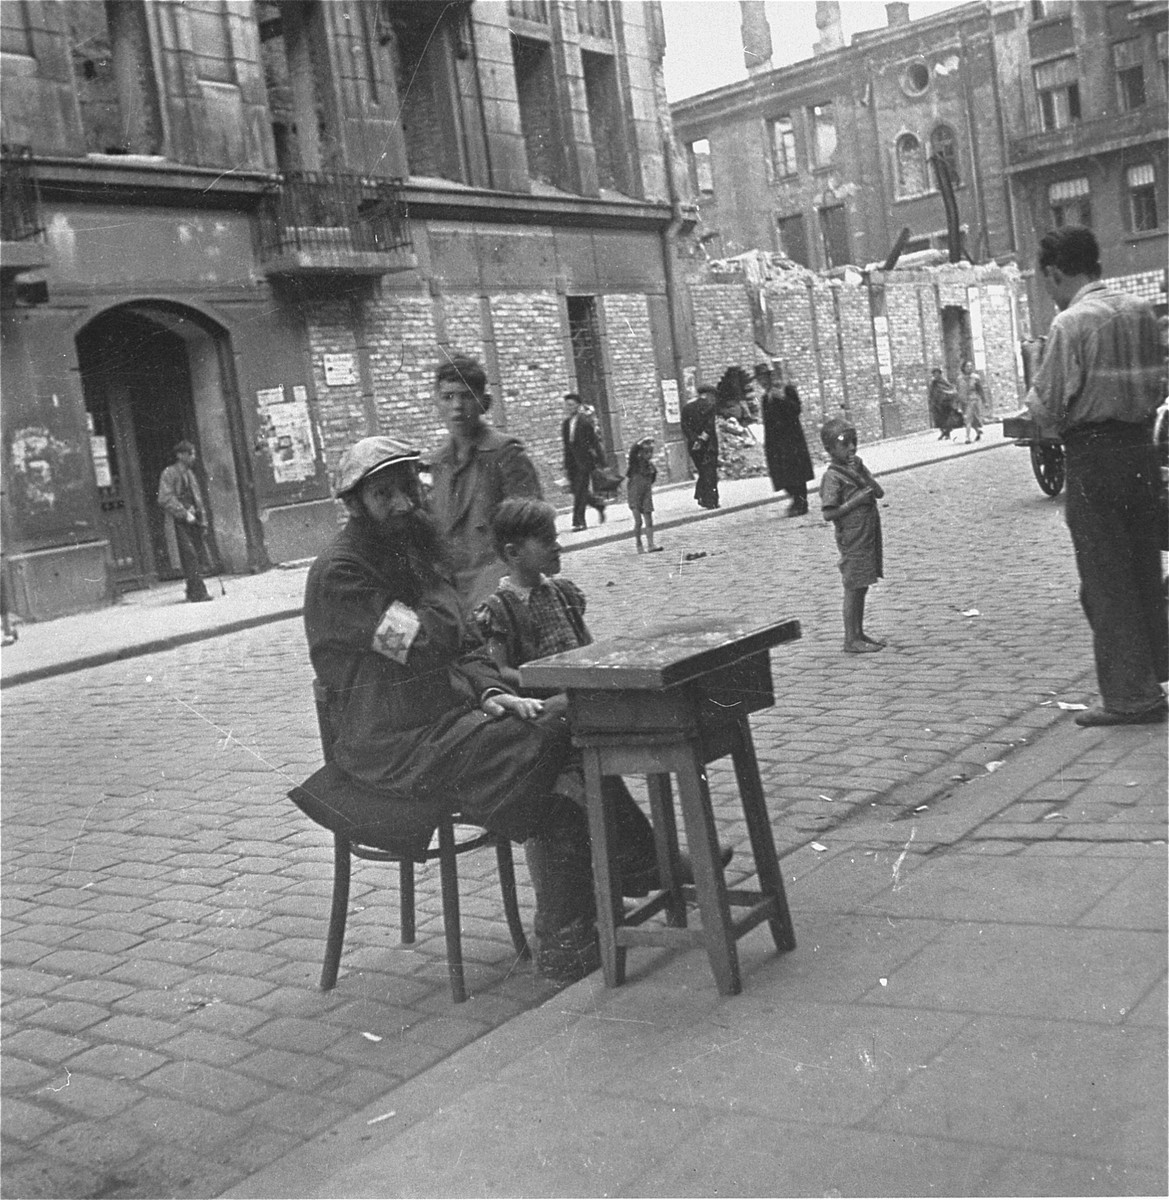 """A vendor on the street in the Warsaw ghetto.    Joest's original caption reads: """"This man was selling something.  I don't know more [about it], was it cigarettes?  The fact that small boy was barefoot on this September day again stood out to me."""""""